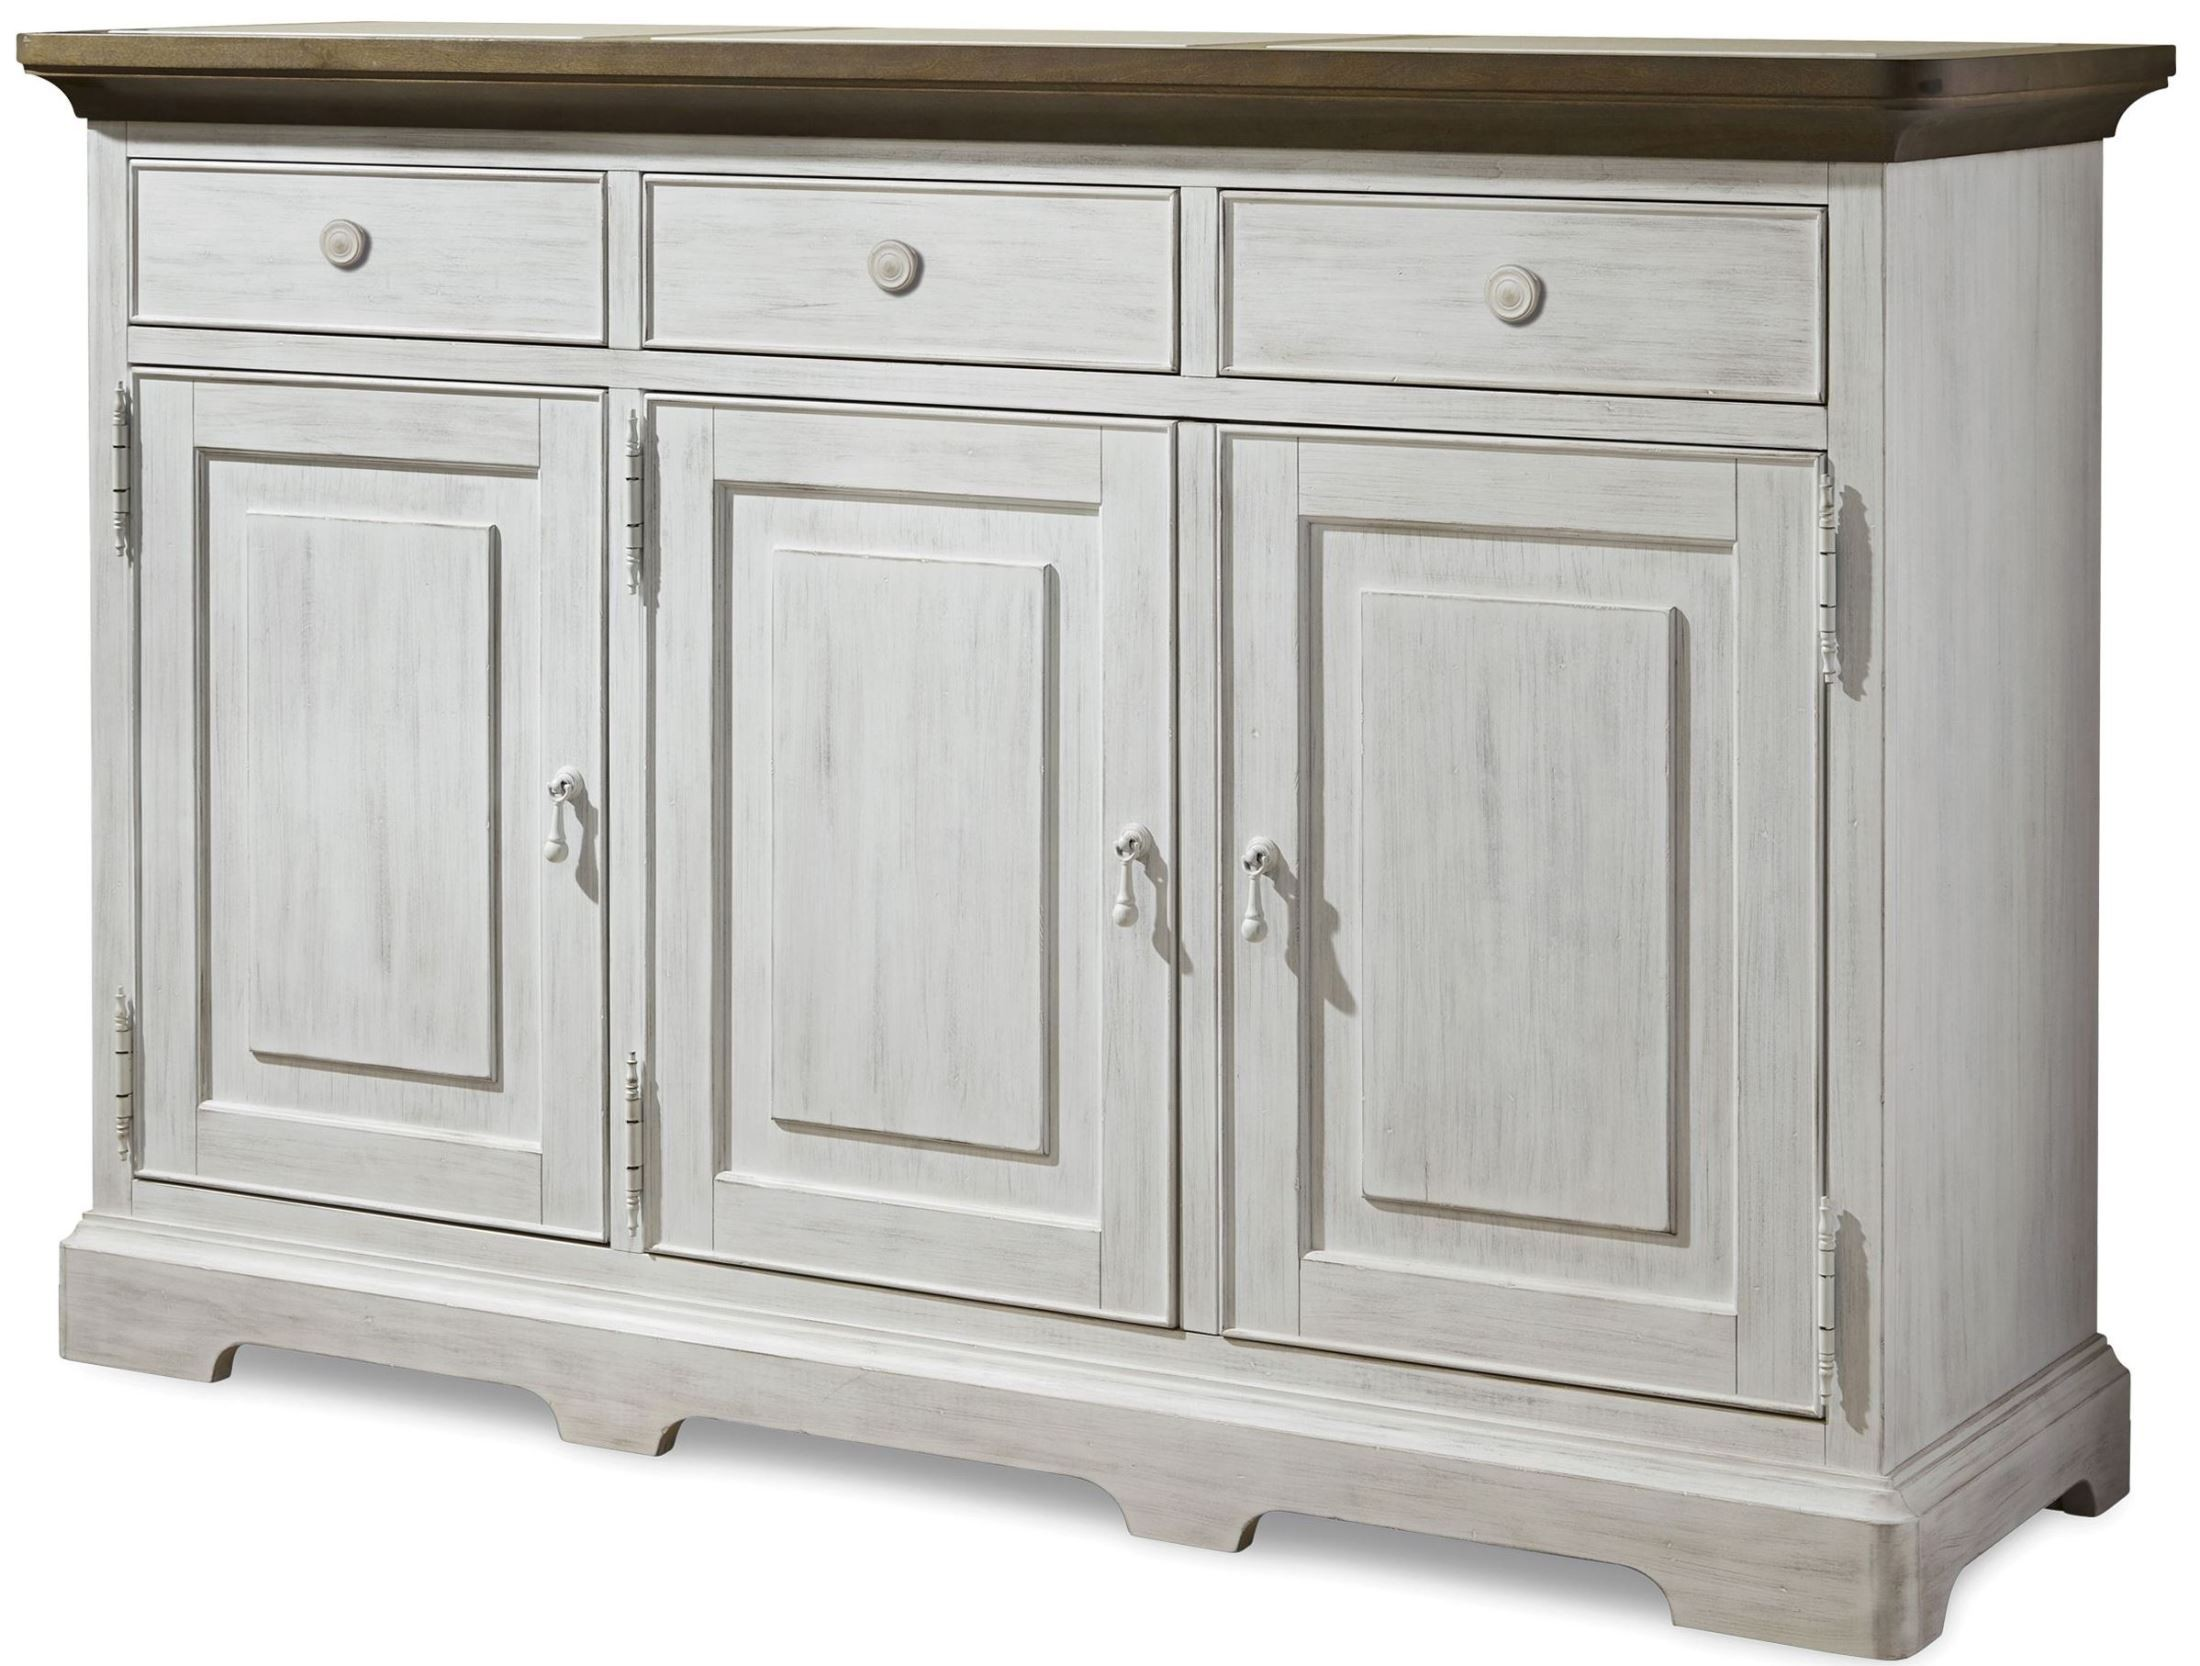 Kitchen Cabinet Kings Discount Code Dogwood Blossom Credenza From Paula Deen 597a679